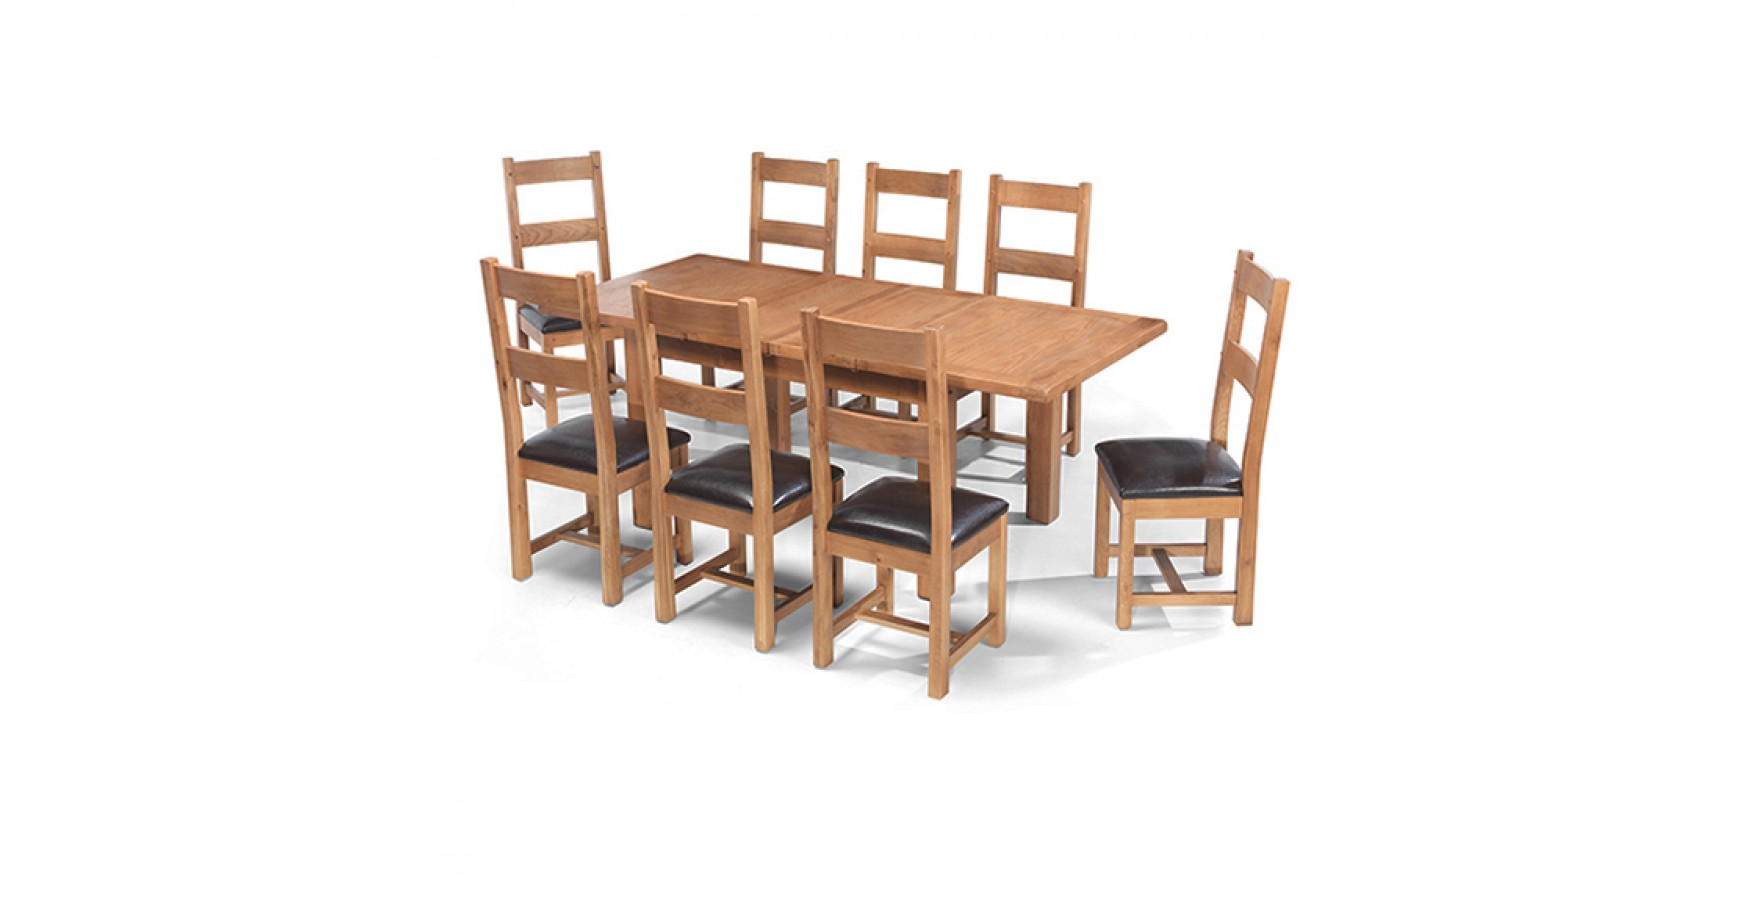 Rustic Oak 132-198 cm Extending Dining Table and 8 Chairs  sc 1 st  Lifestyle Furniture & Rustic Oak 132-198 cm Extending Dining Table and 8 Chairs ...